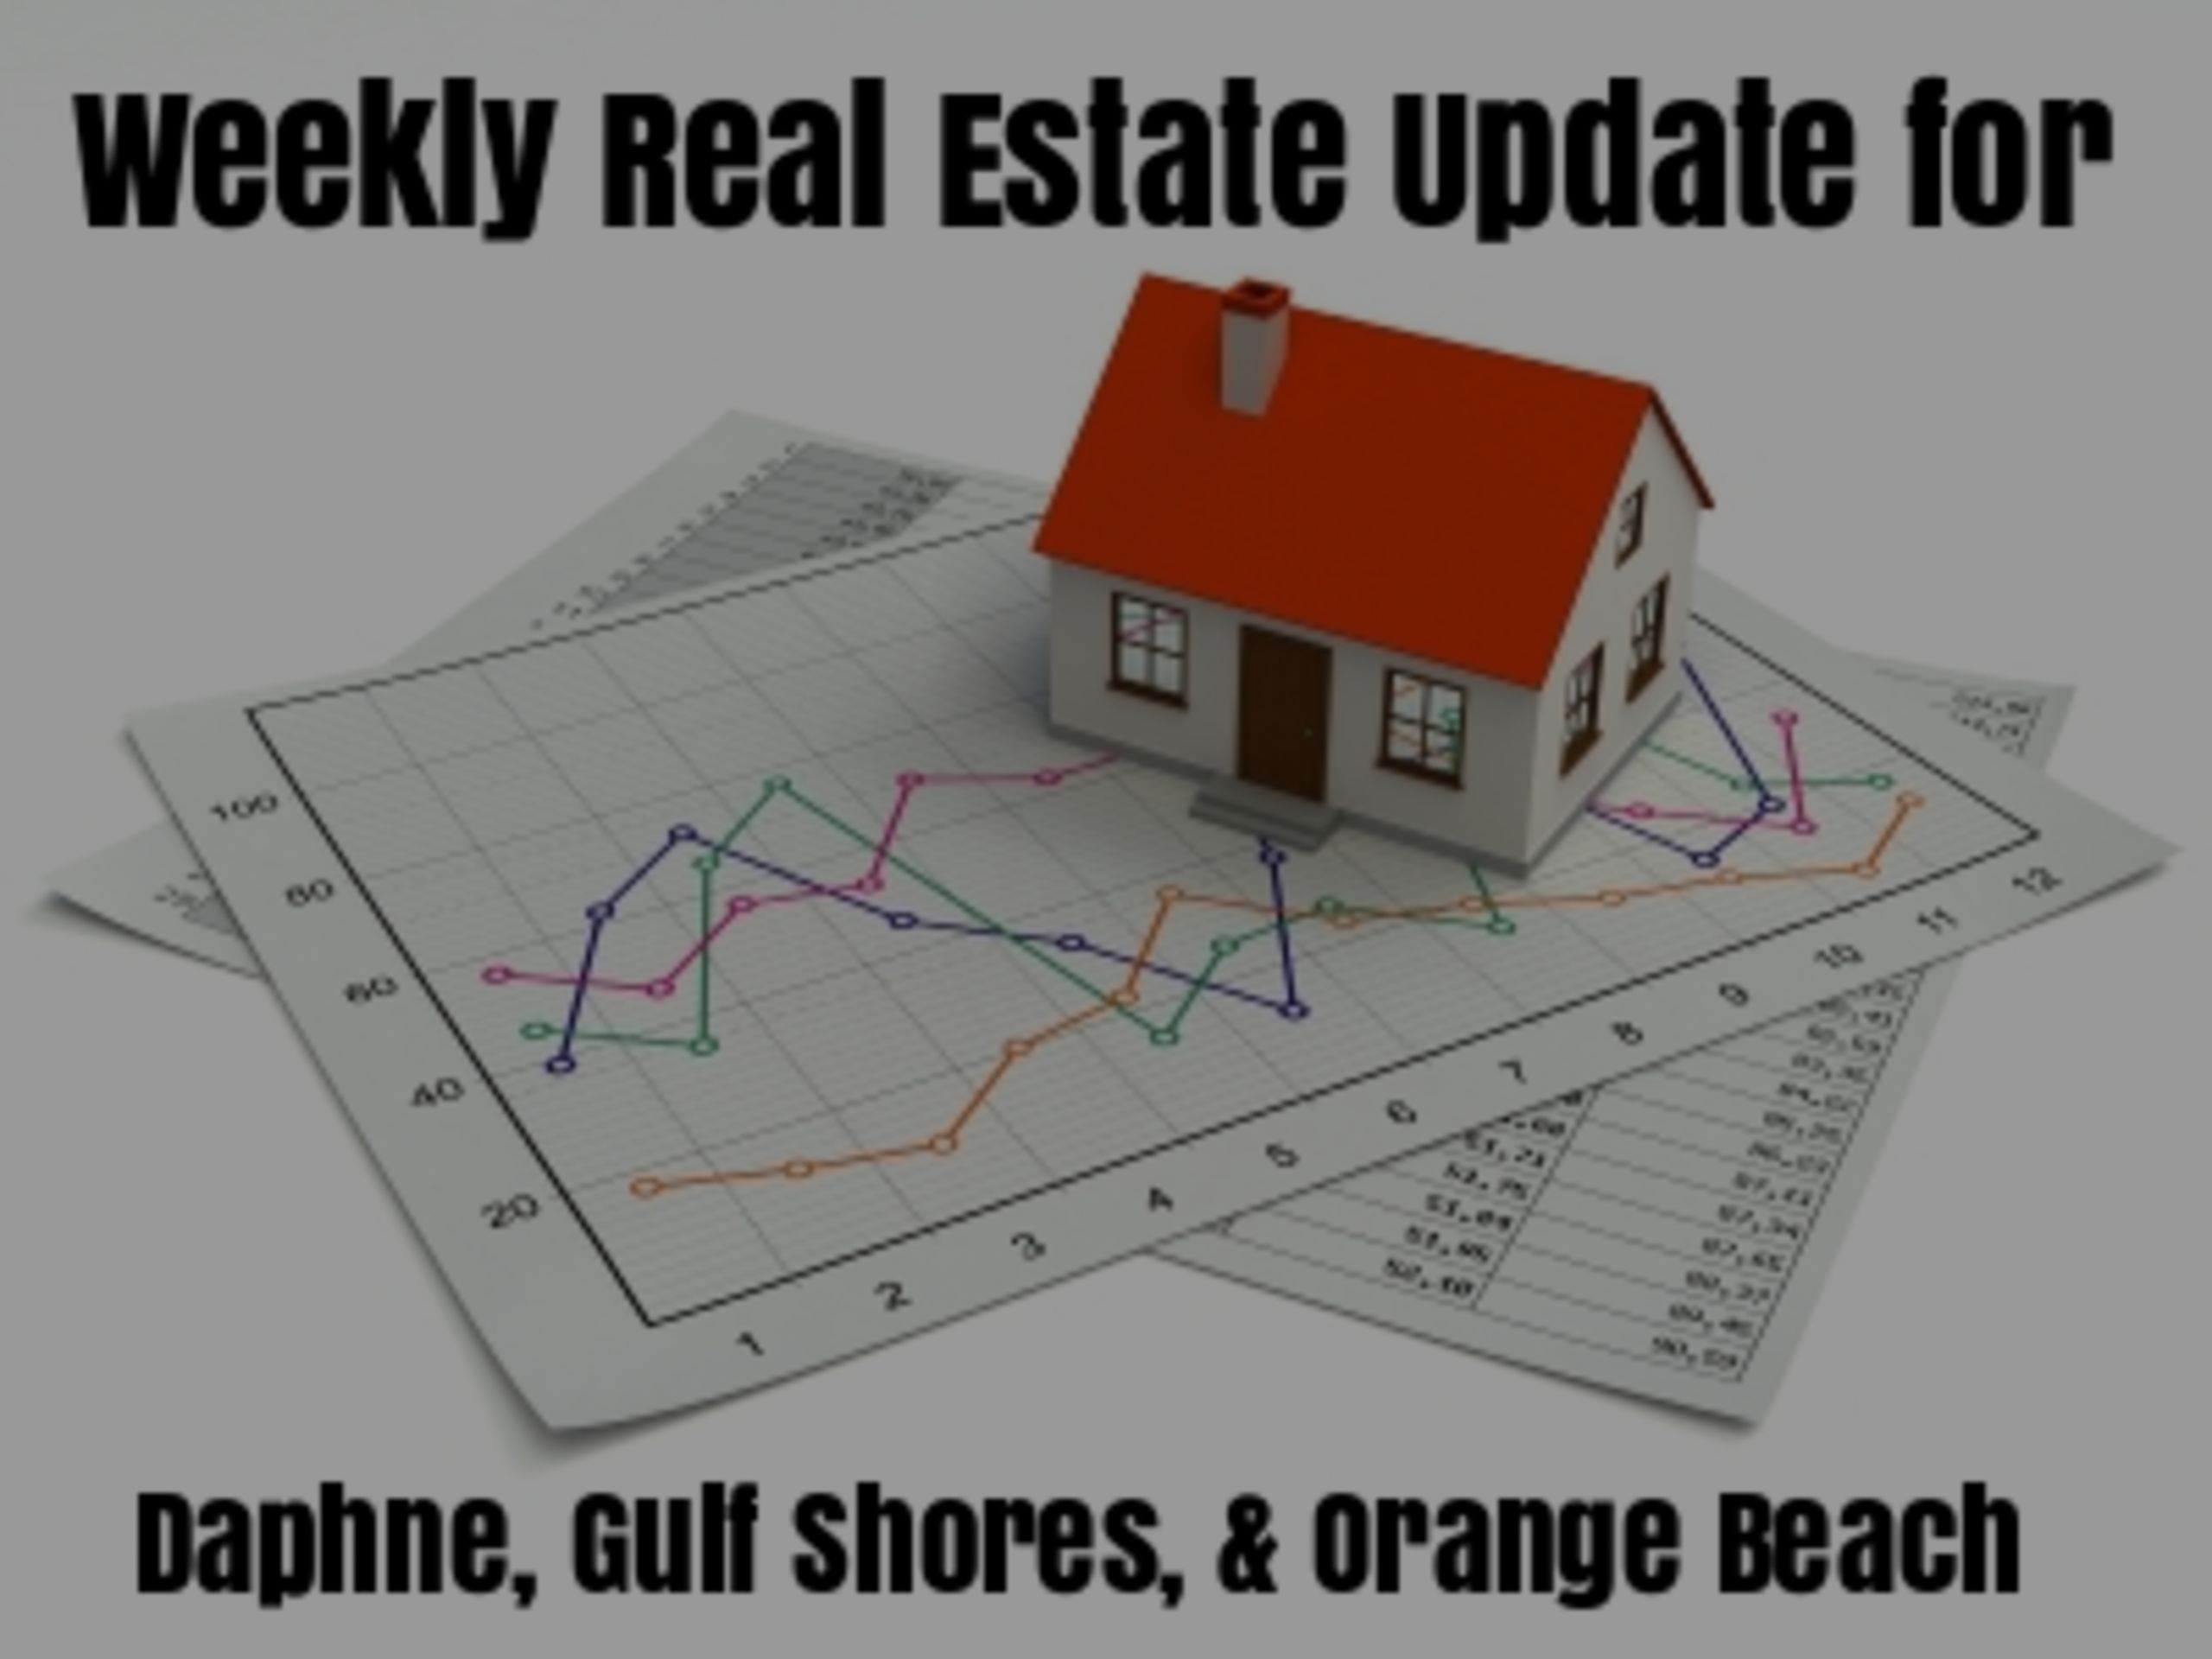 Weekly Real Estate Update – Daphne, Gulf Shores, and Orange Beach – 2/13/17